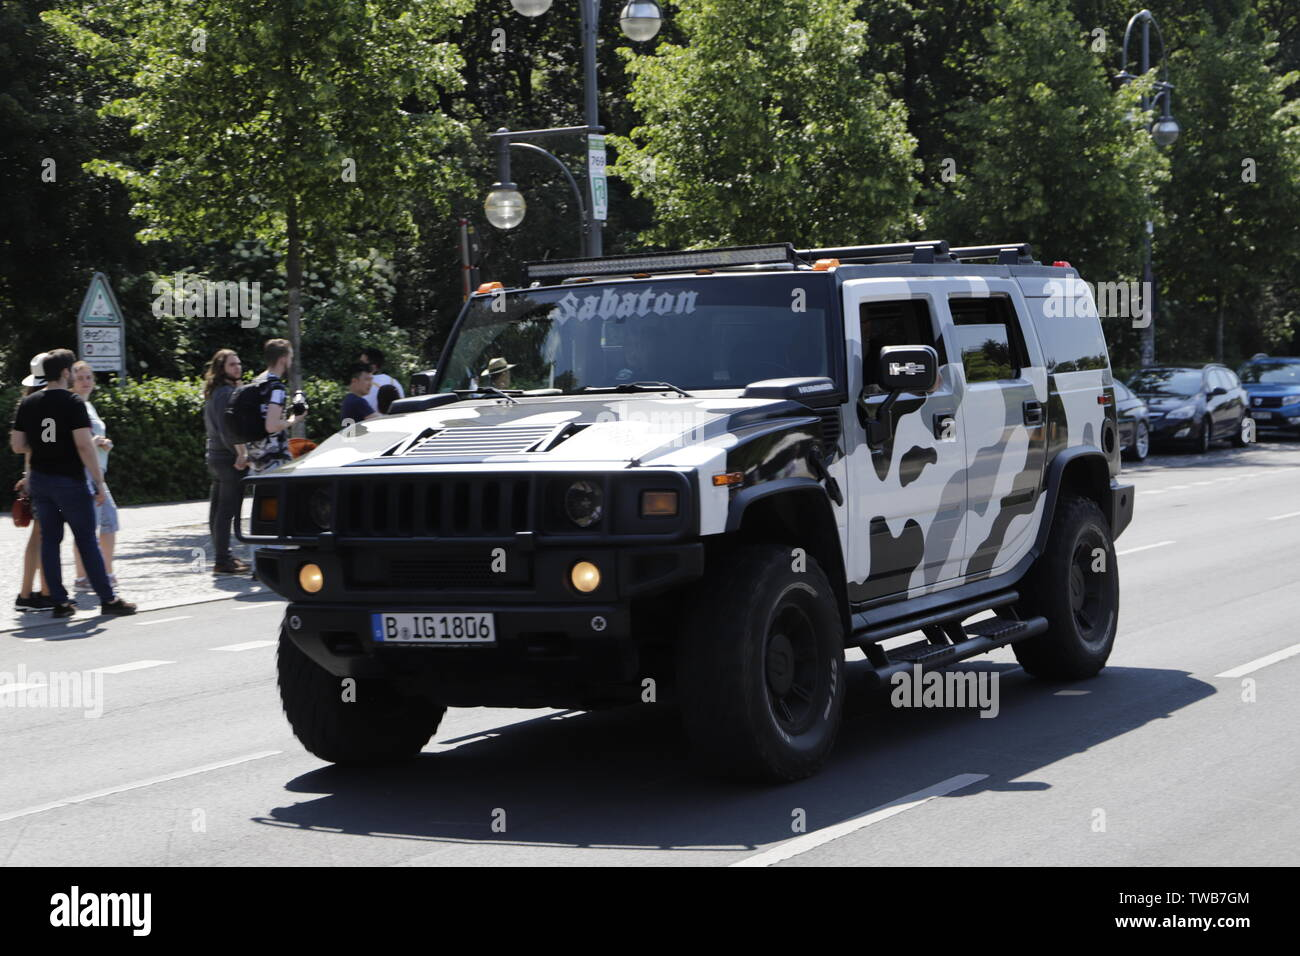 Hummer car in the streets of Berlin, Germany Stock Photo